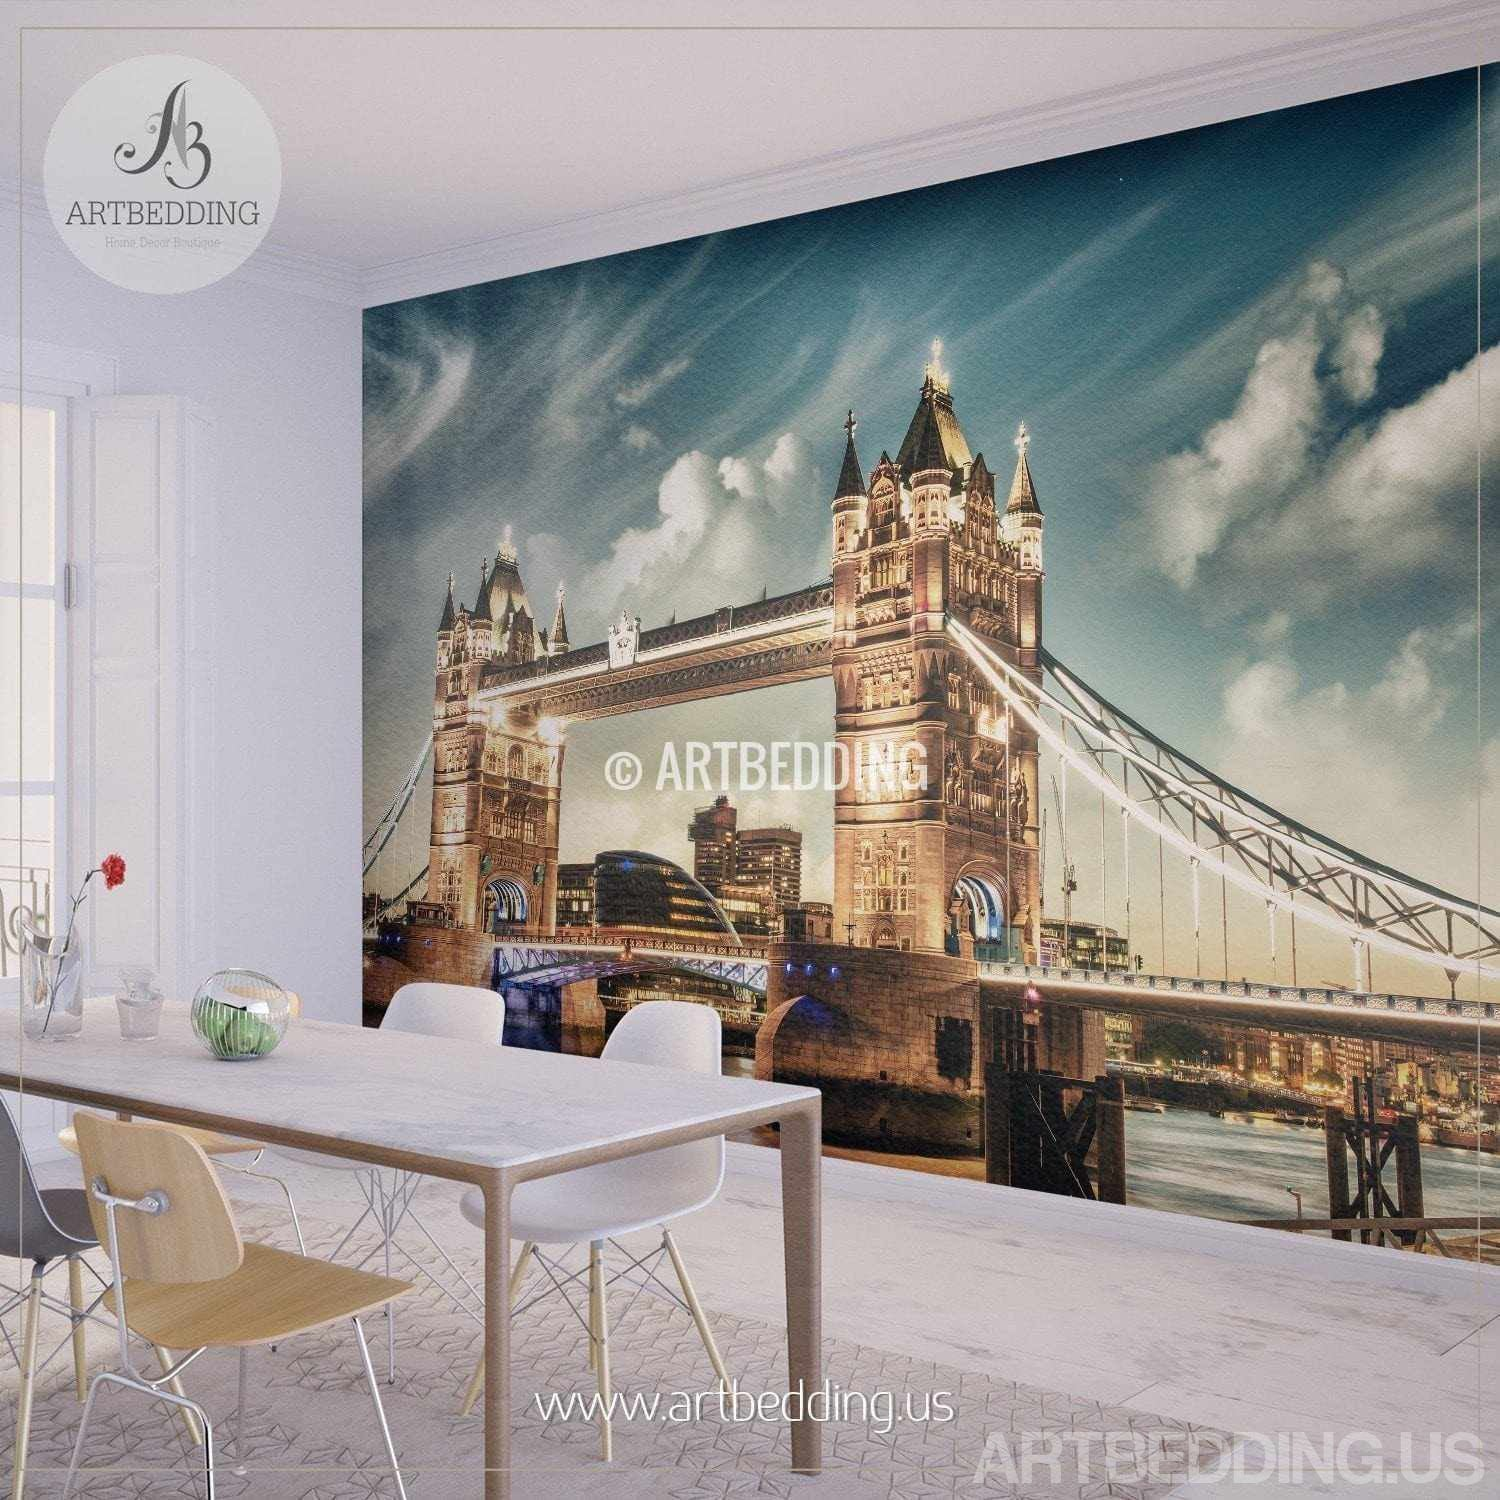 Wall murals peel and stick self adhesive vinyl hd print tagged london tower bridge on sunset wall mural london tower bridge photo mural sunset london amipublicfo Choice Image